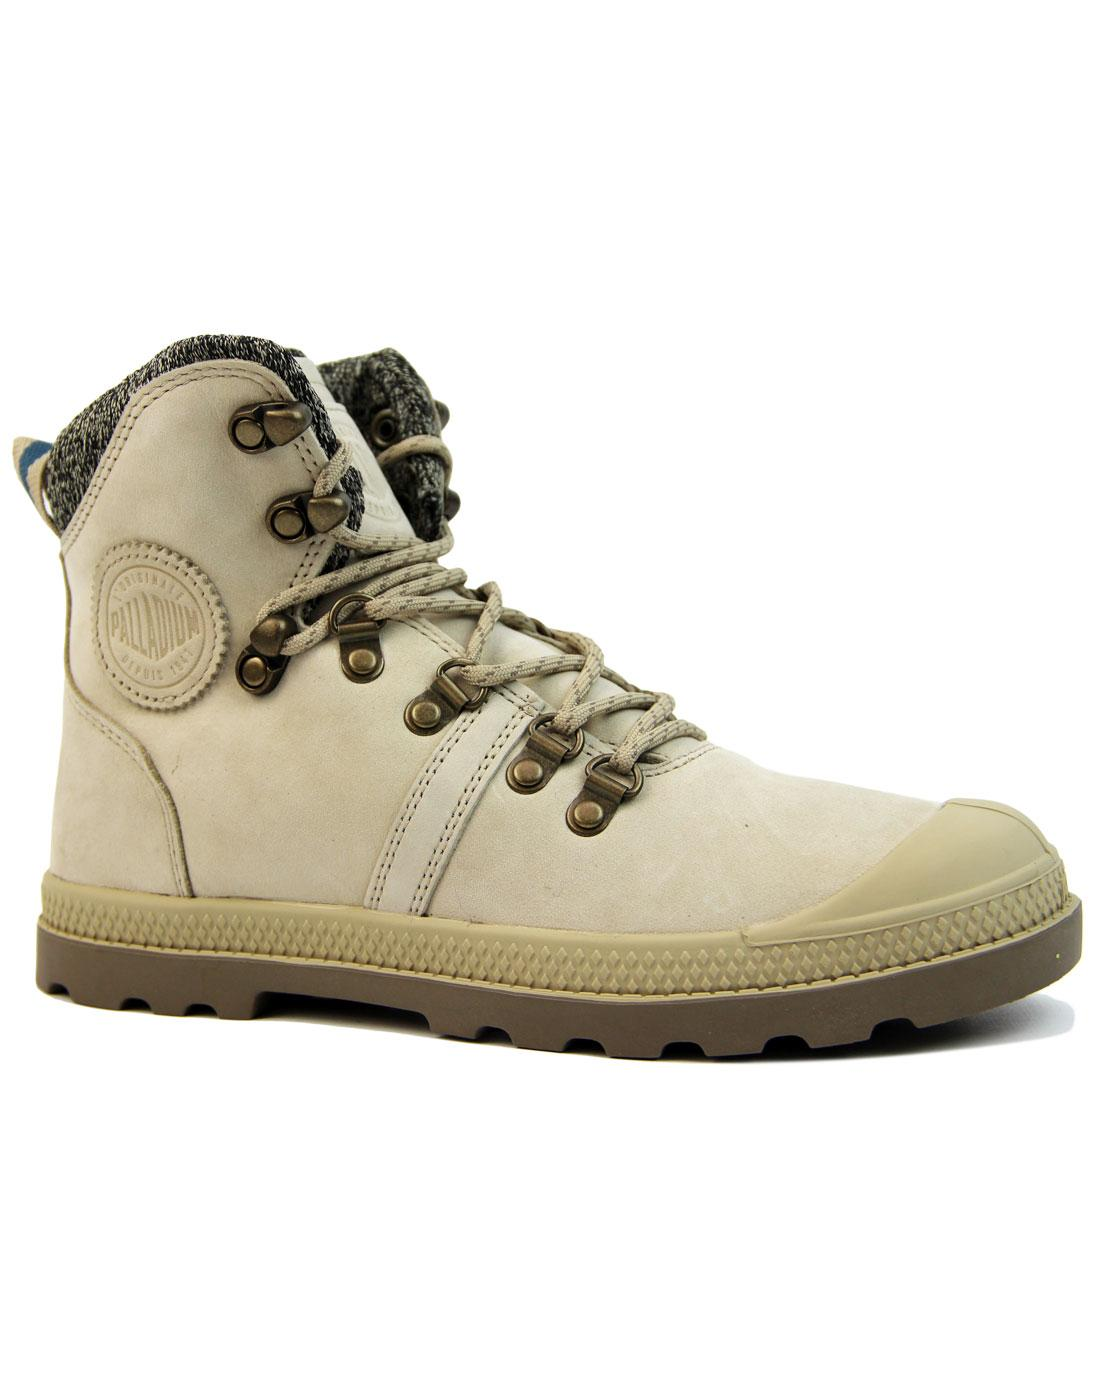 Pallabrouse Hiker PALLADIUM Retro 70s Boots (S/B)